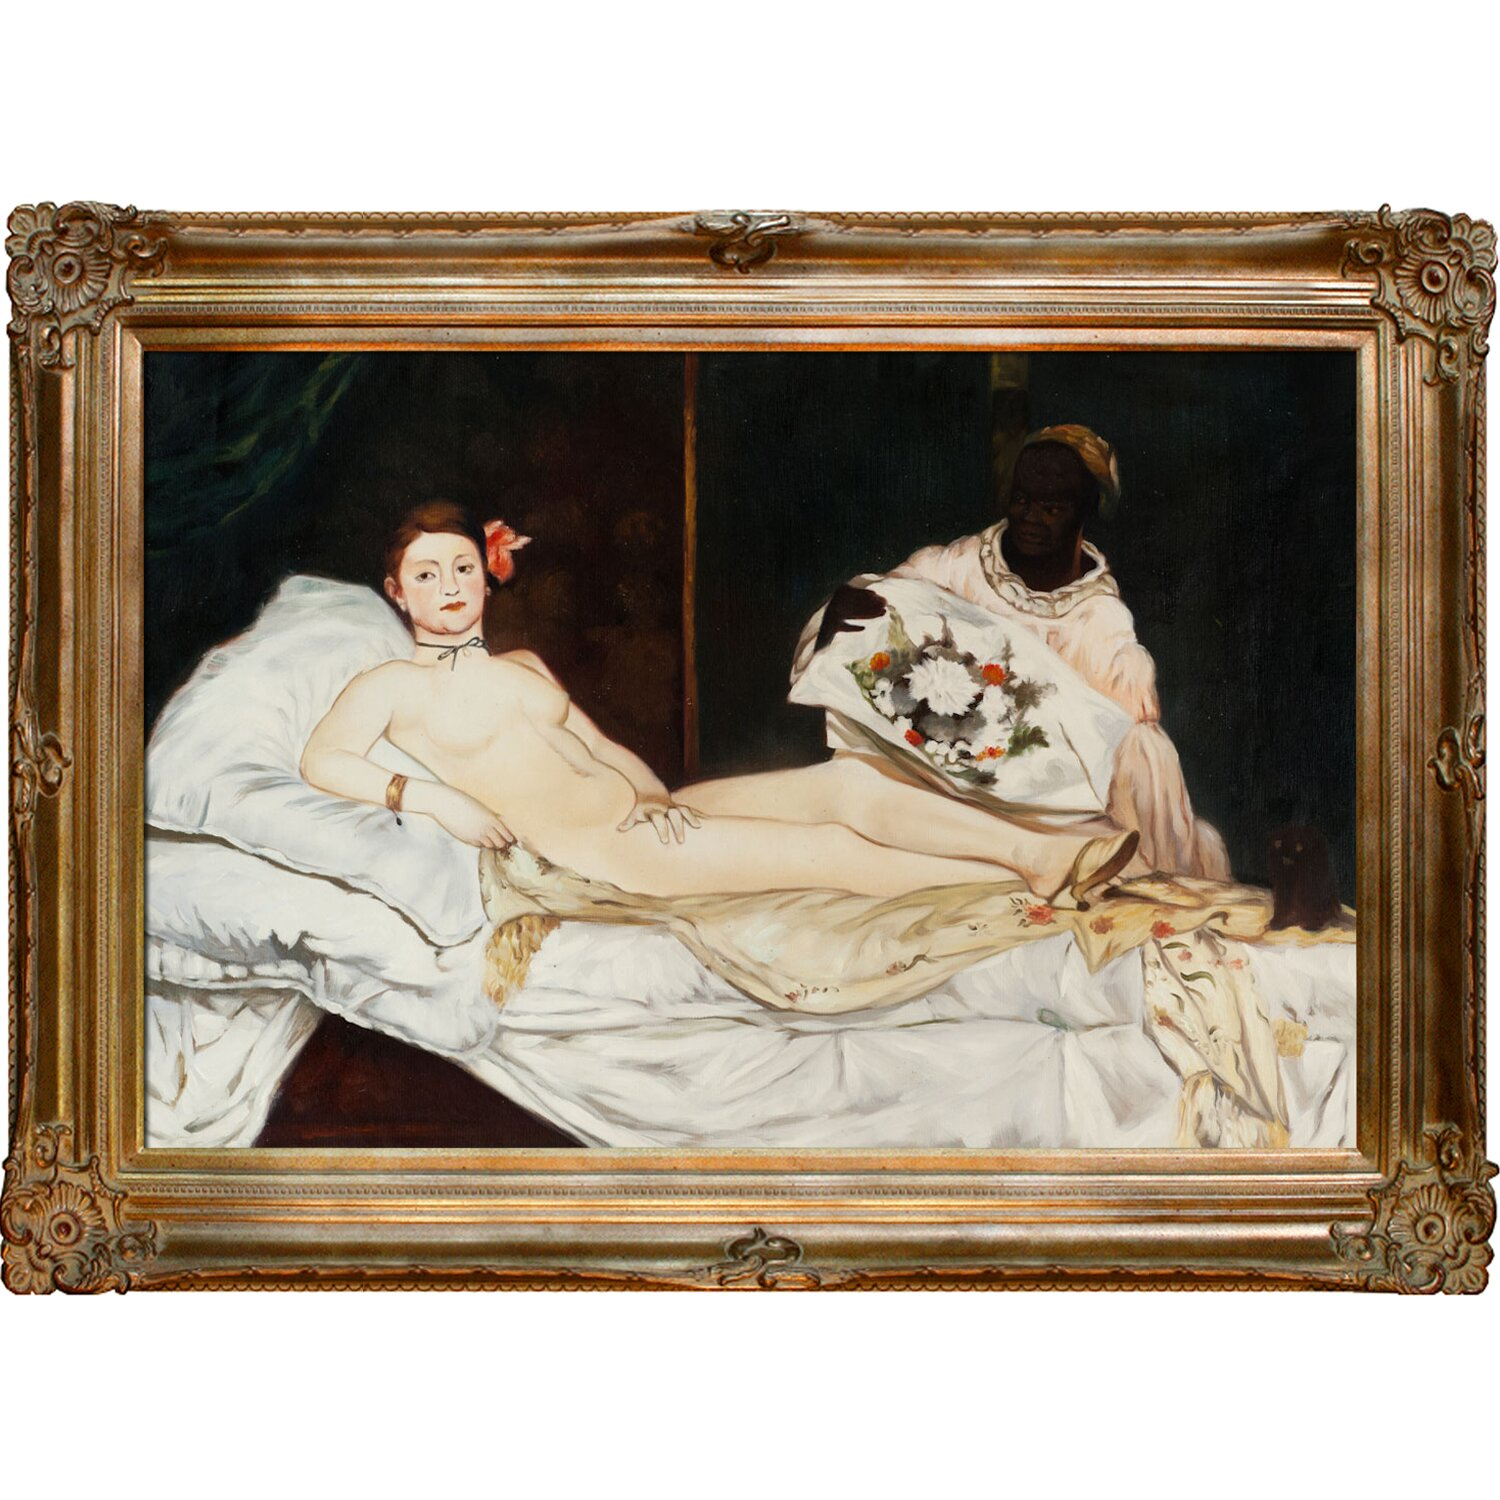 Olympia By Edouard Manet Framed Painting Print Wayfair